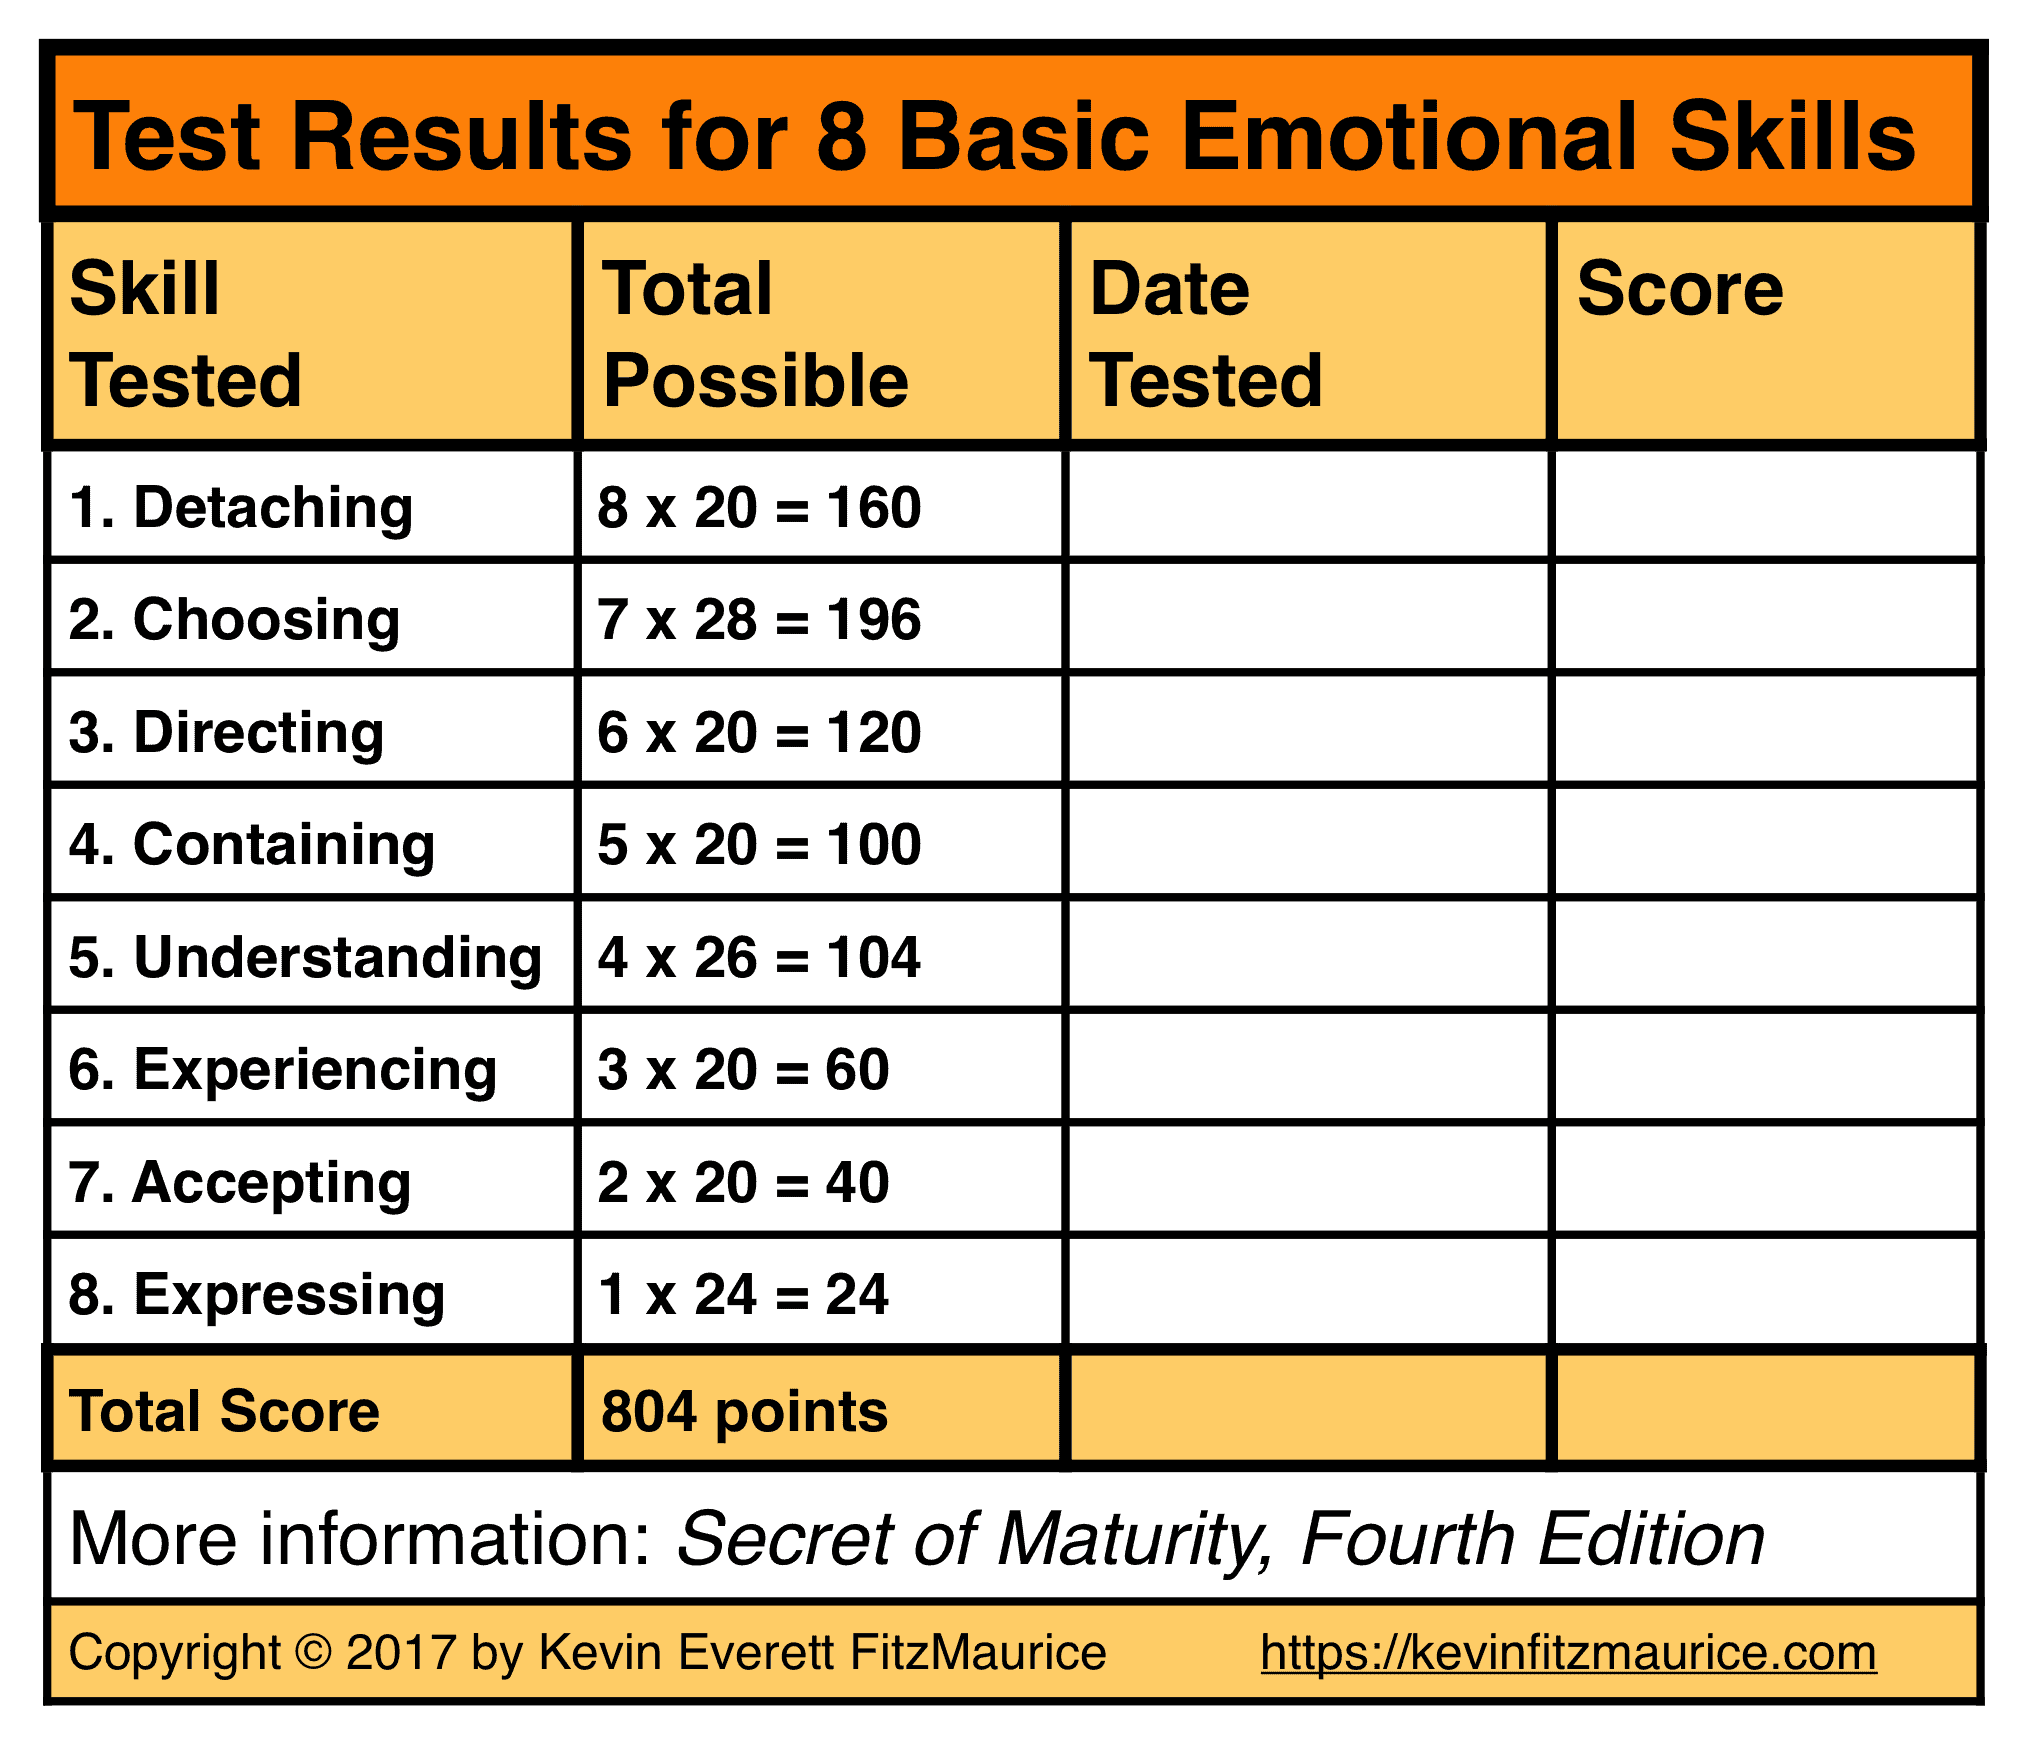 Test Results 8 Basic Emotional Skills